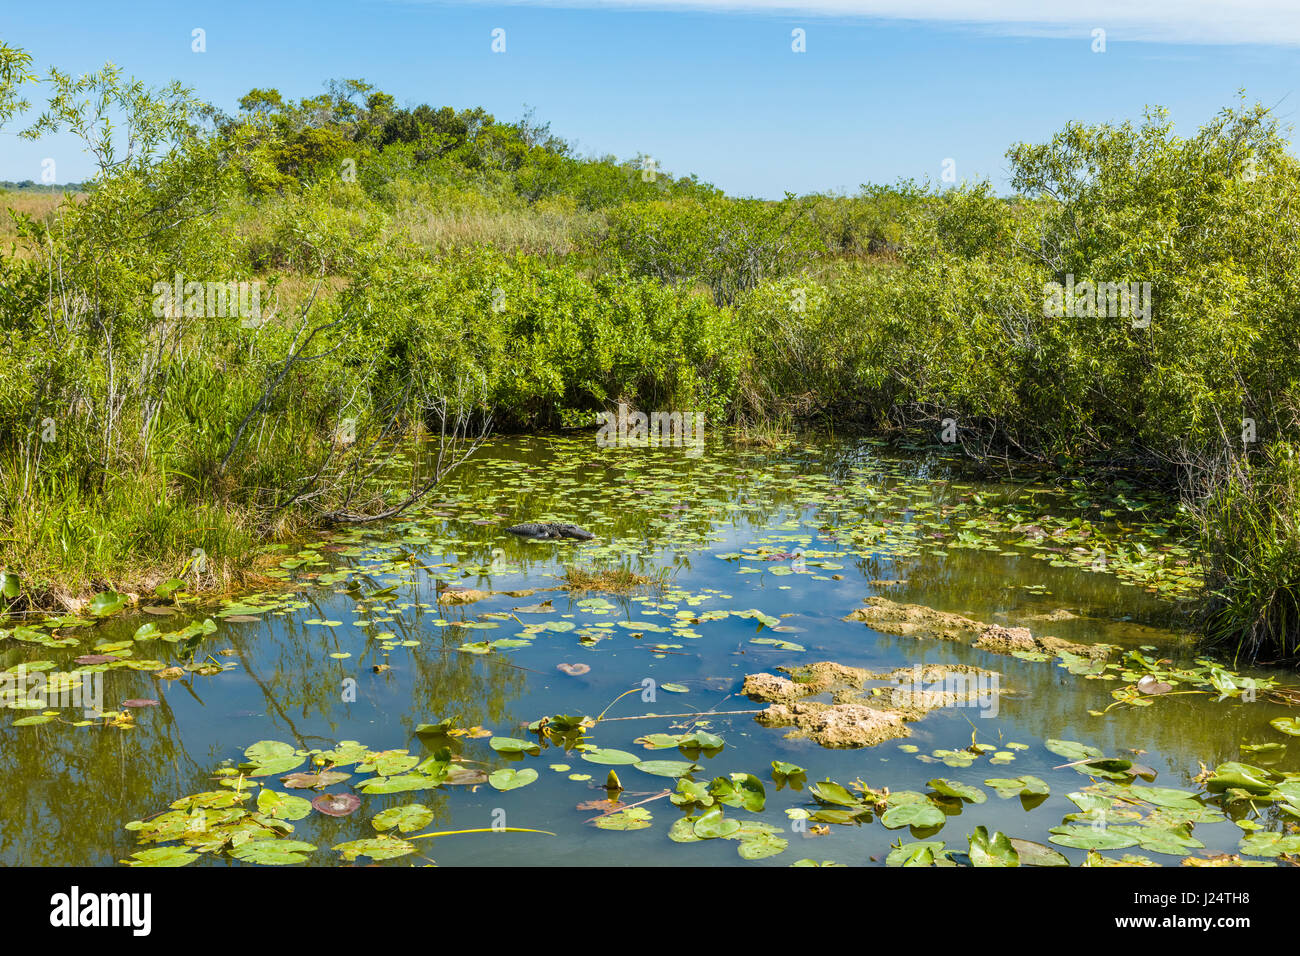 Sawgrass marsh along the popular Anhinga Trail at the Royal Palms Visitor Center in the Everglades National Park - Stock Image